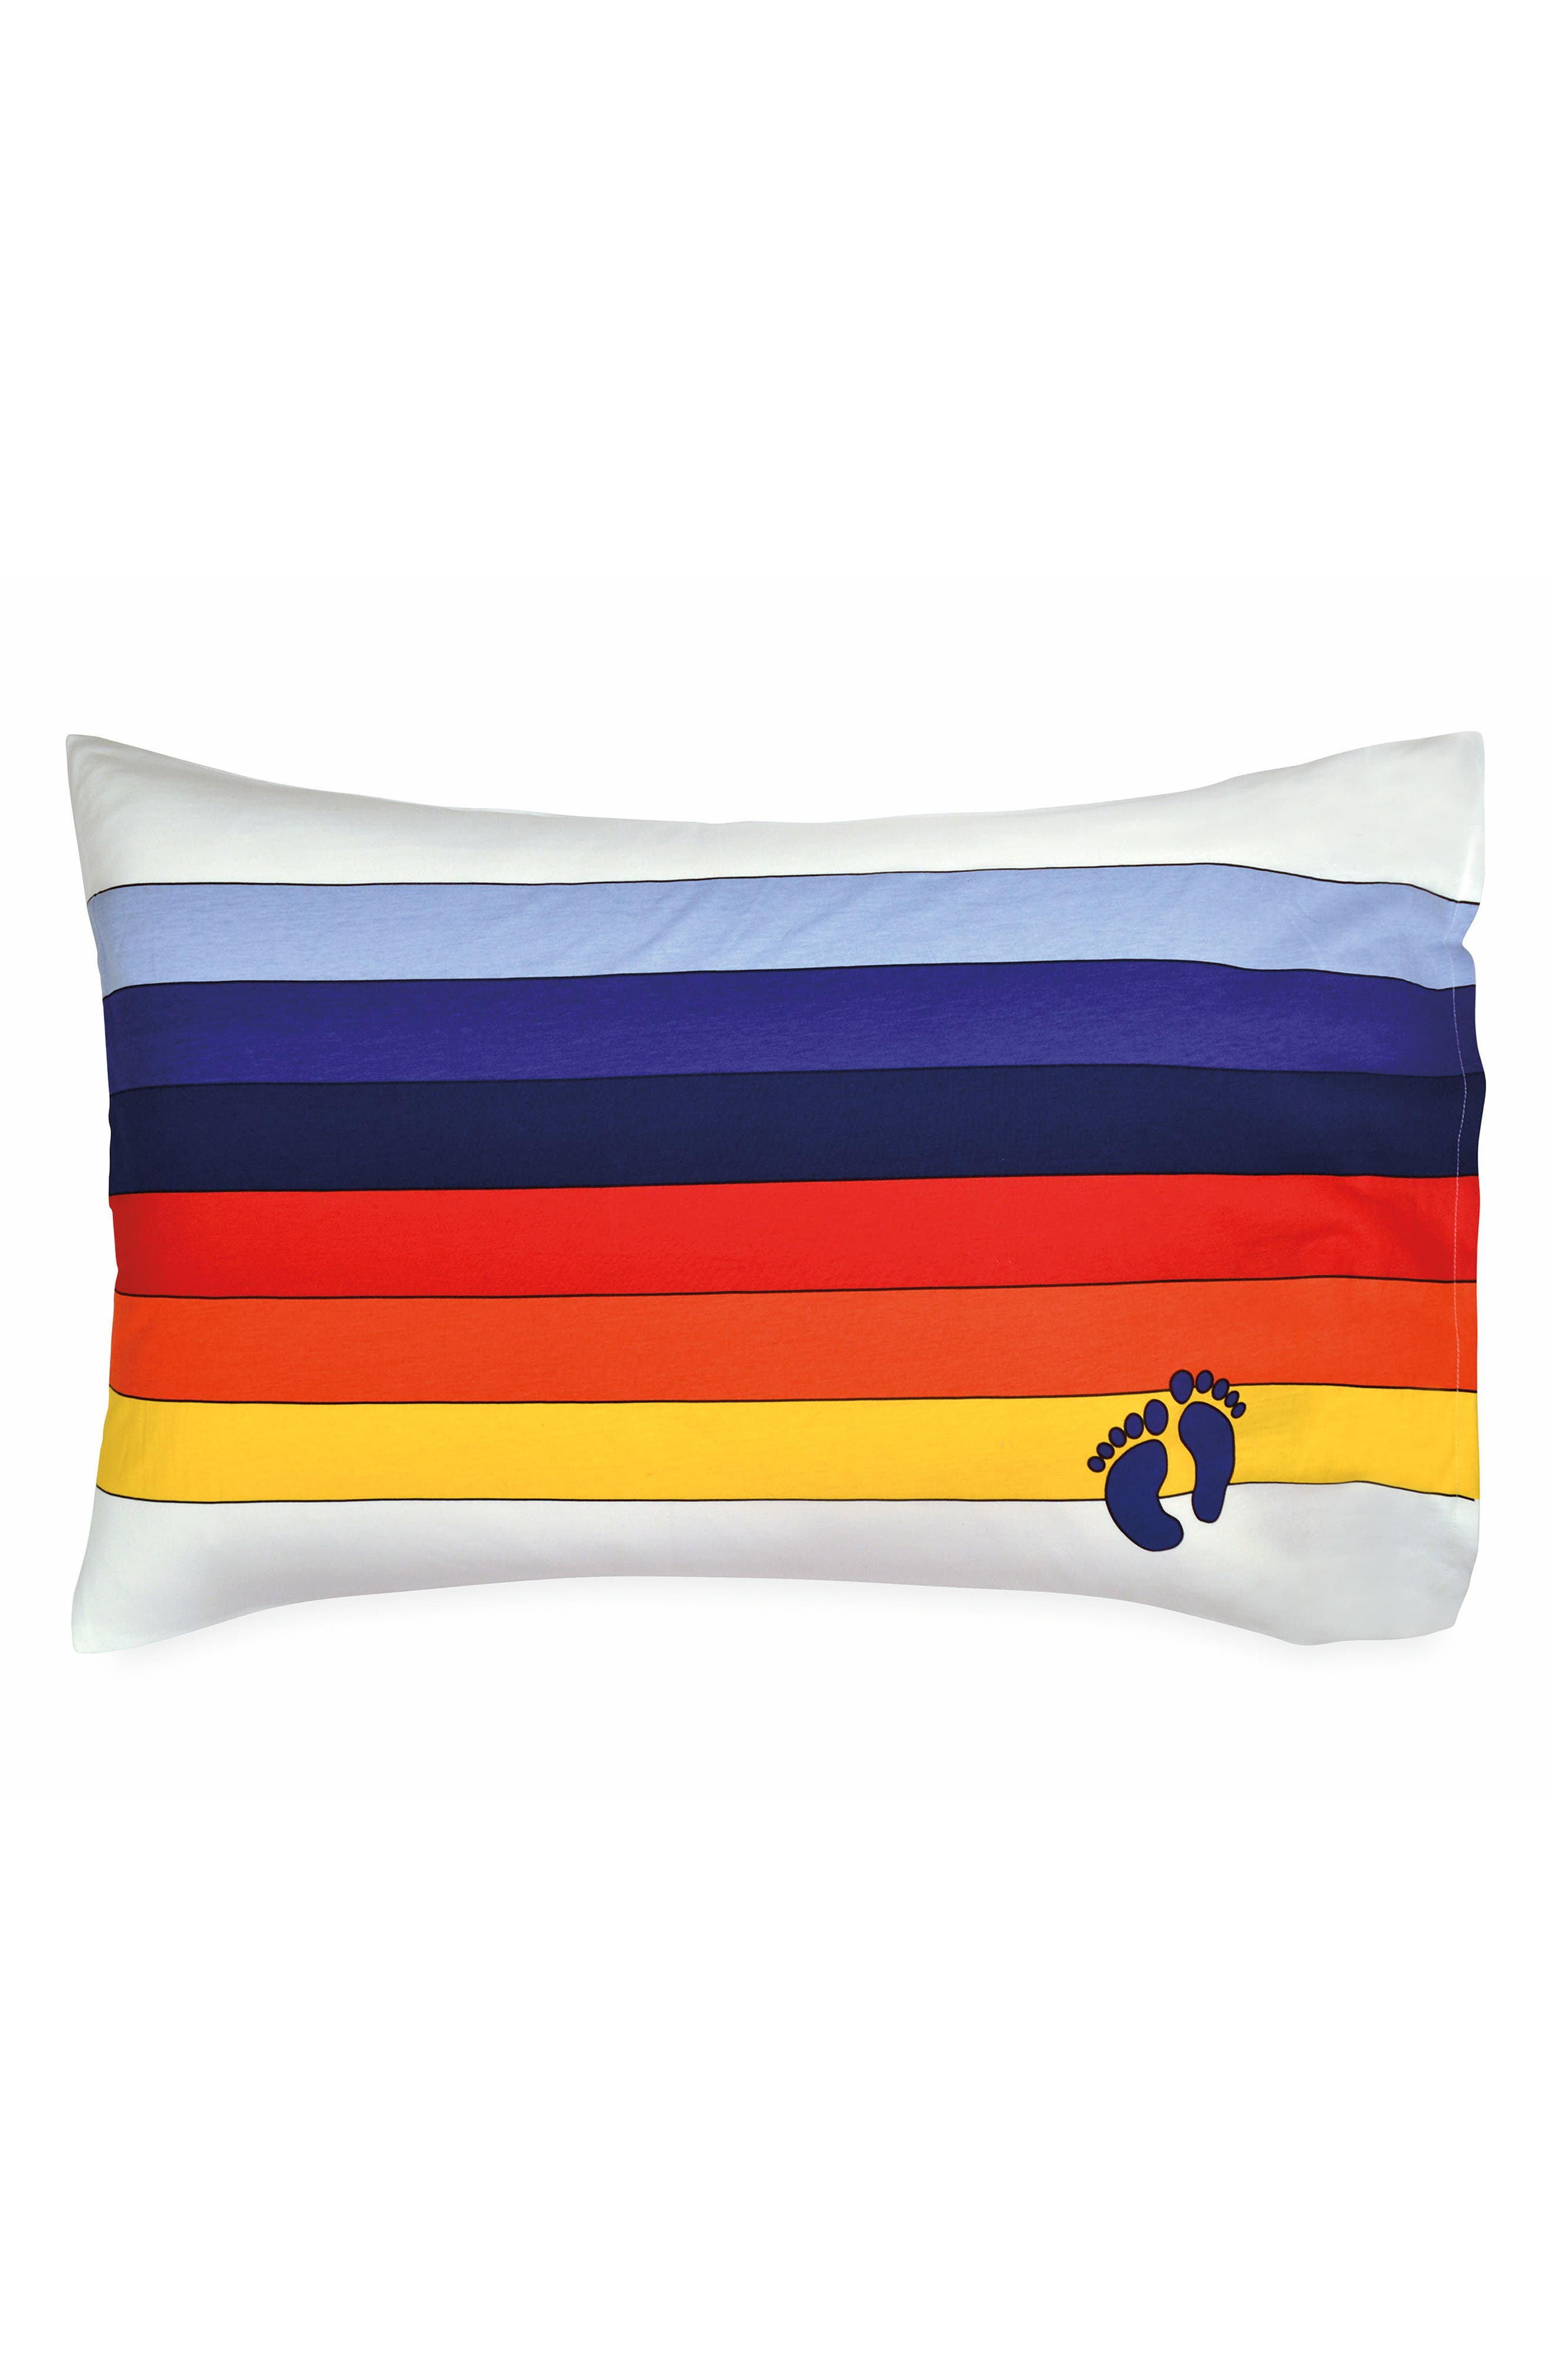 Rainbow Pillowcase,                             Main thumbnail 1, color,                             White